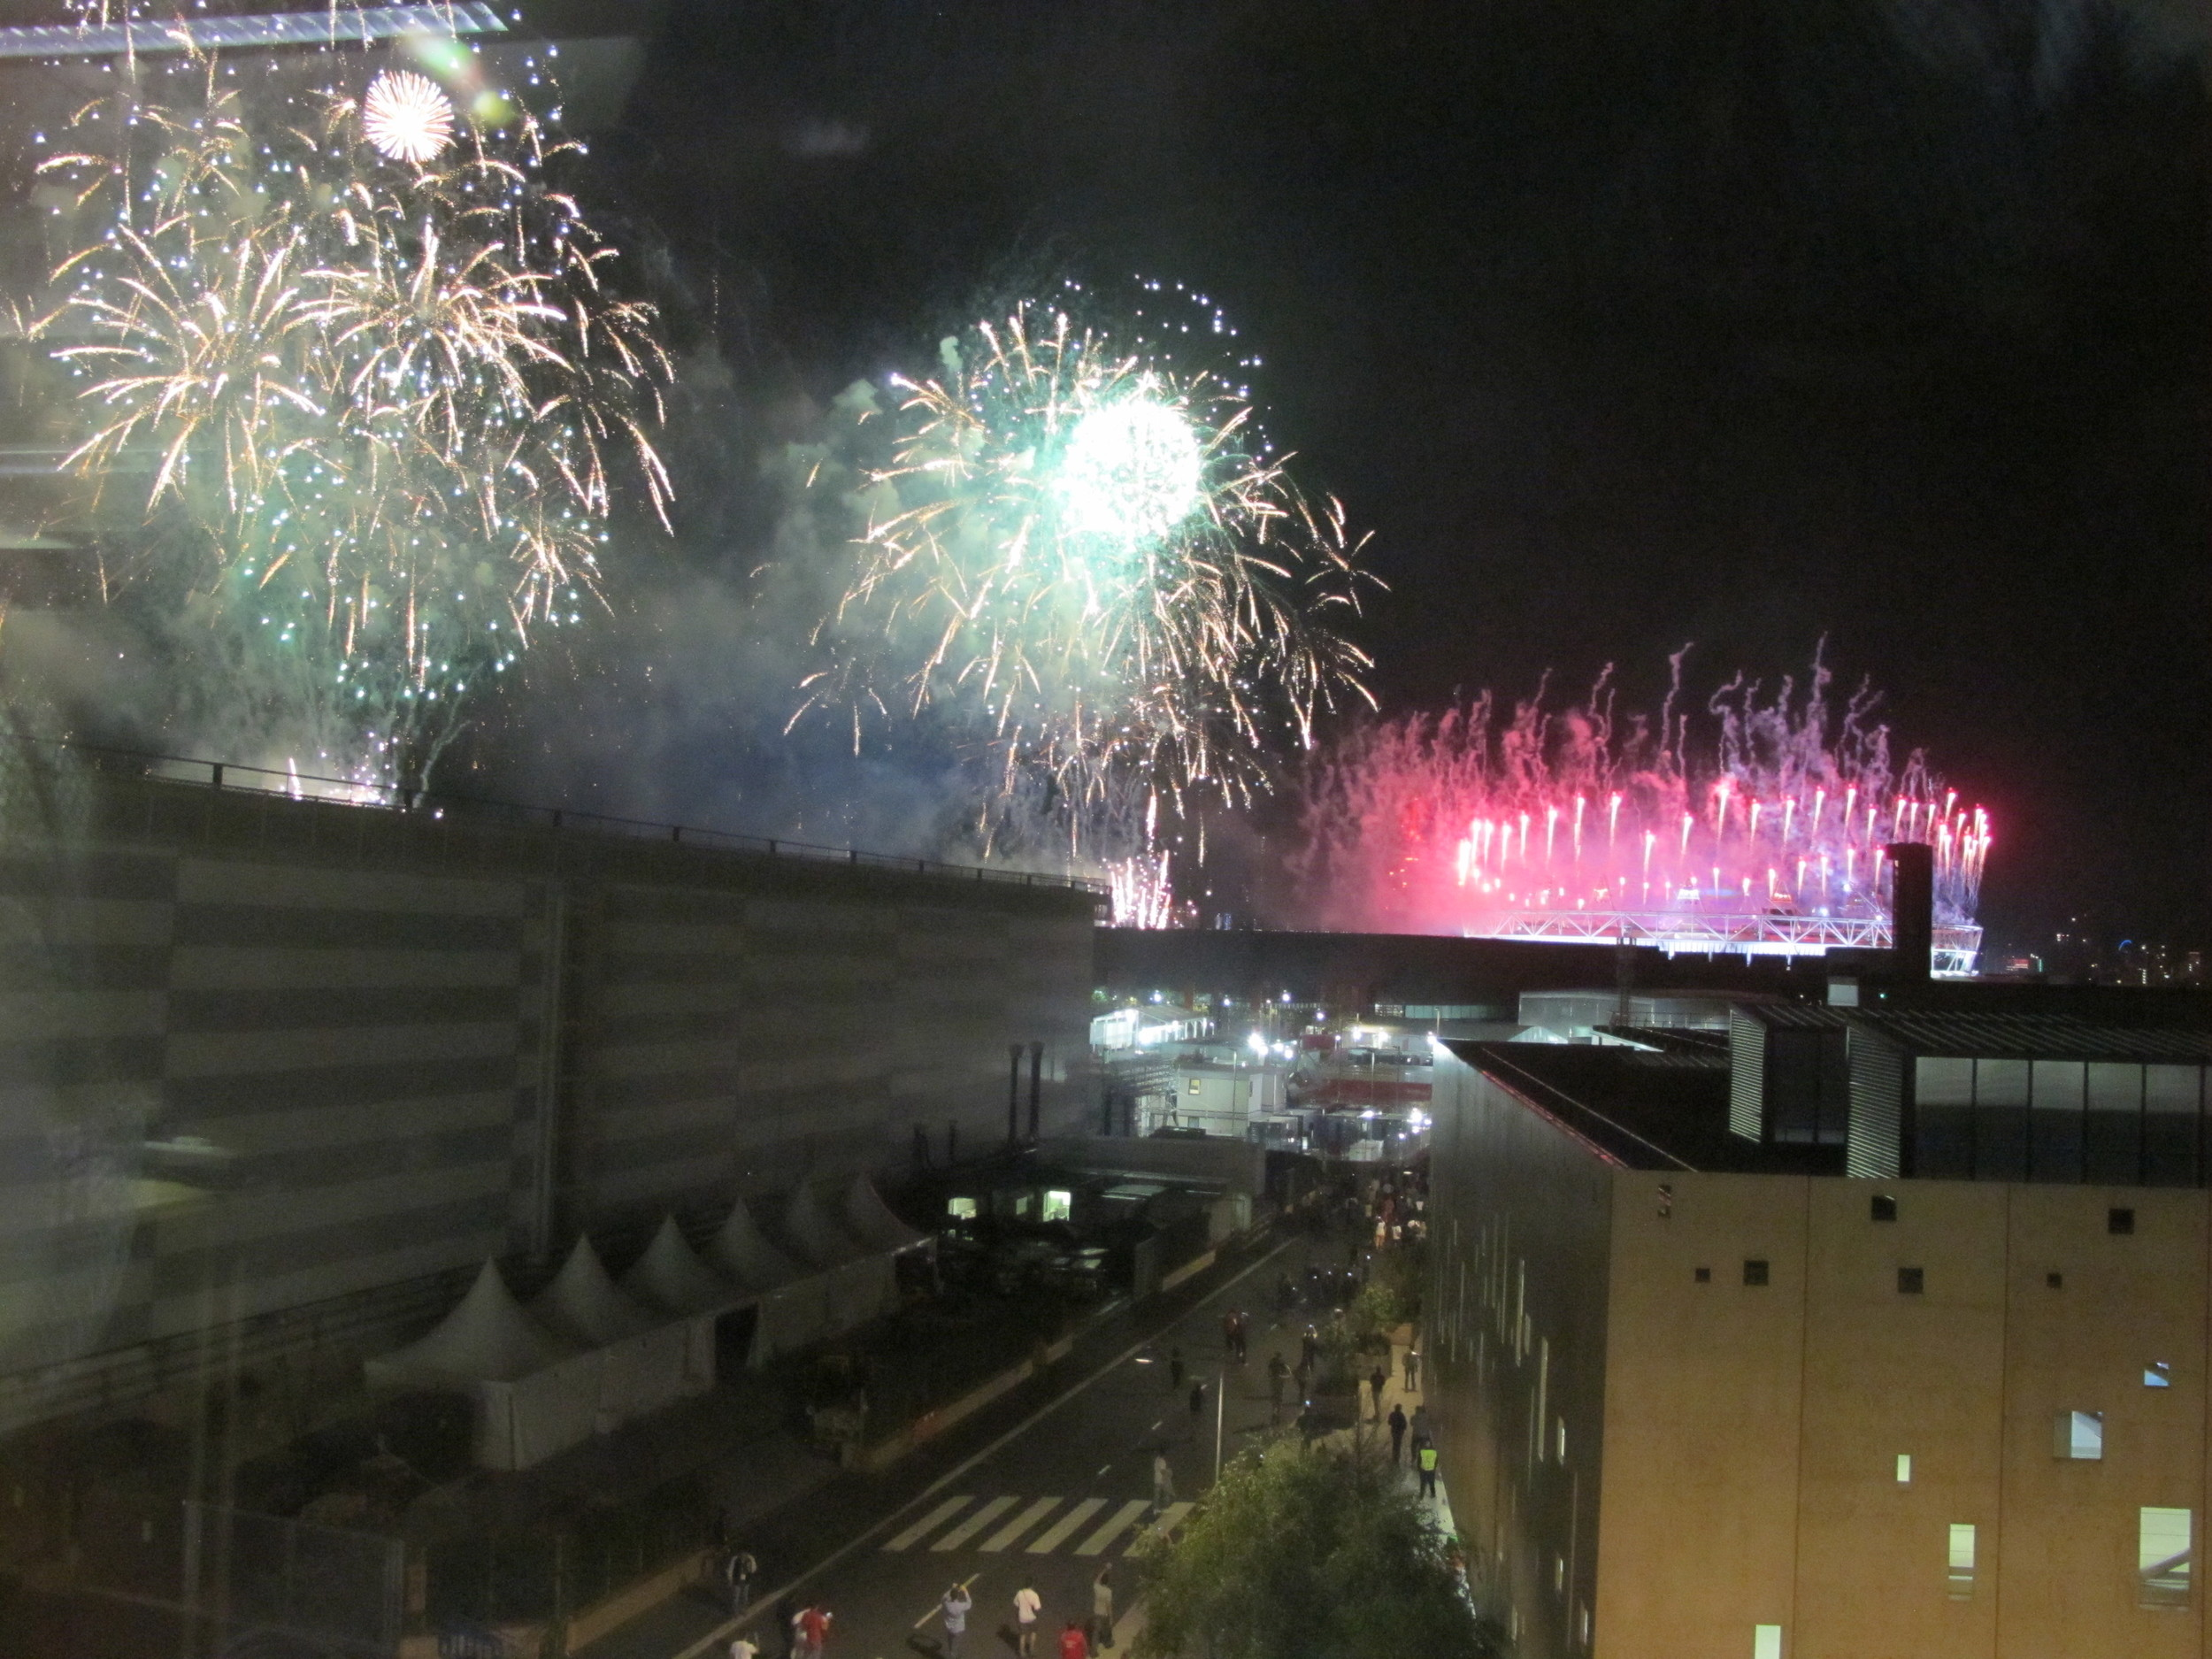 Olympic closing ceremony fireworks as seen from our office at the main press center.